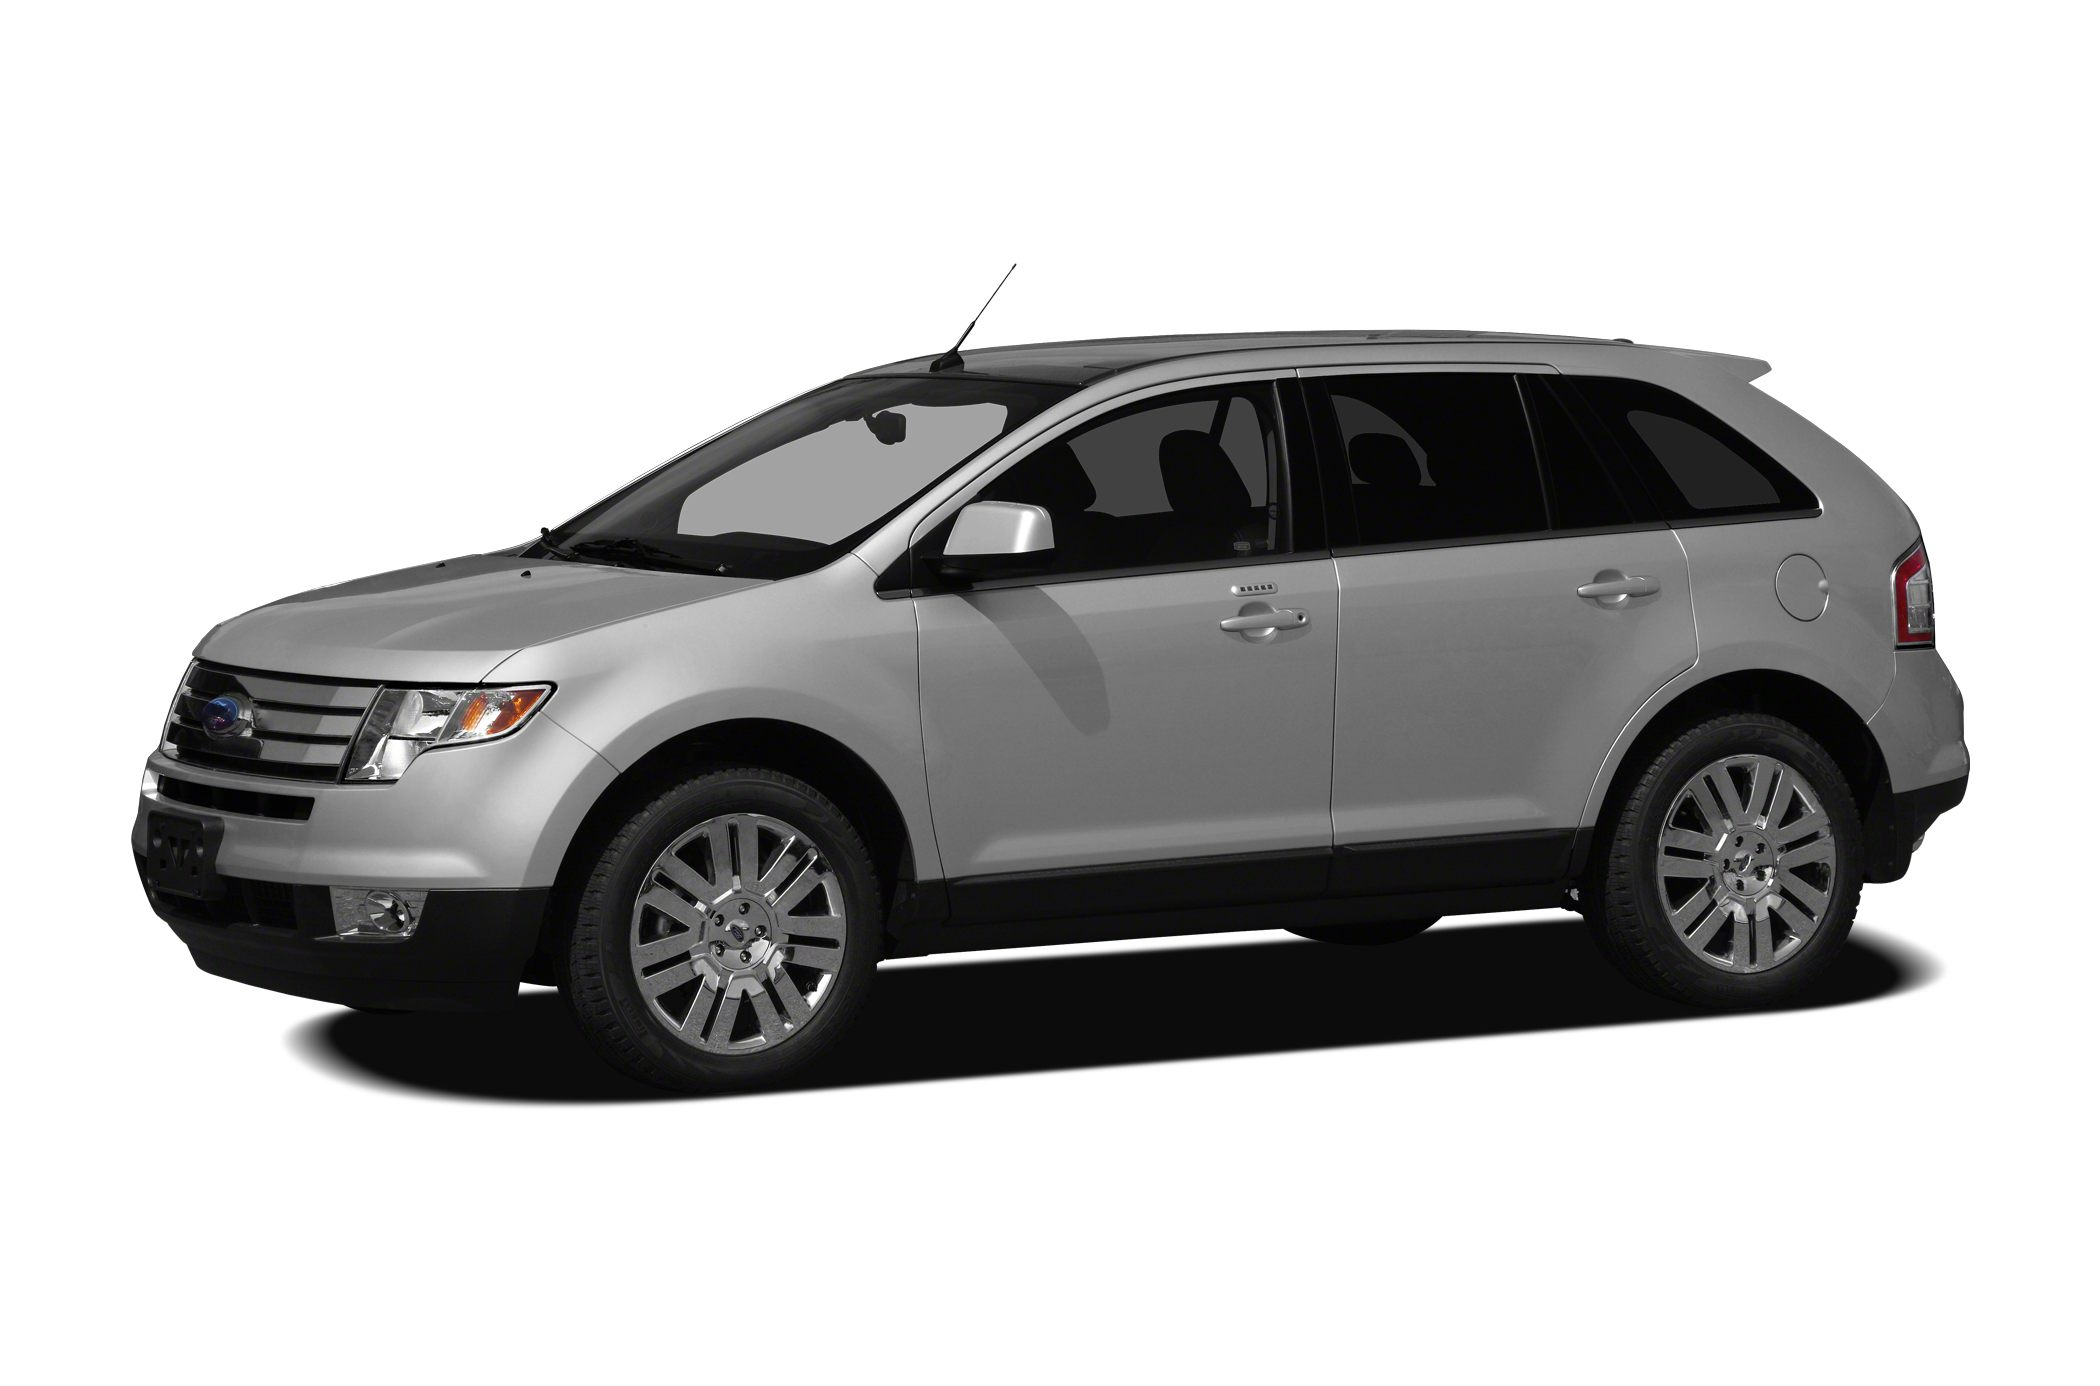 2010 Ford Edge SEL SUV for sale in Dexter for $25,900 with 27,264 miles